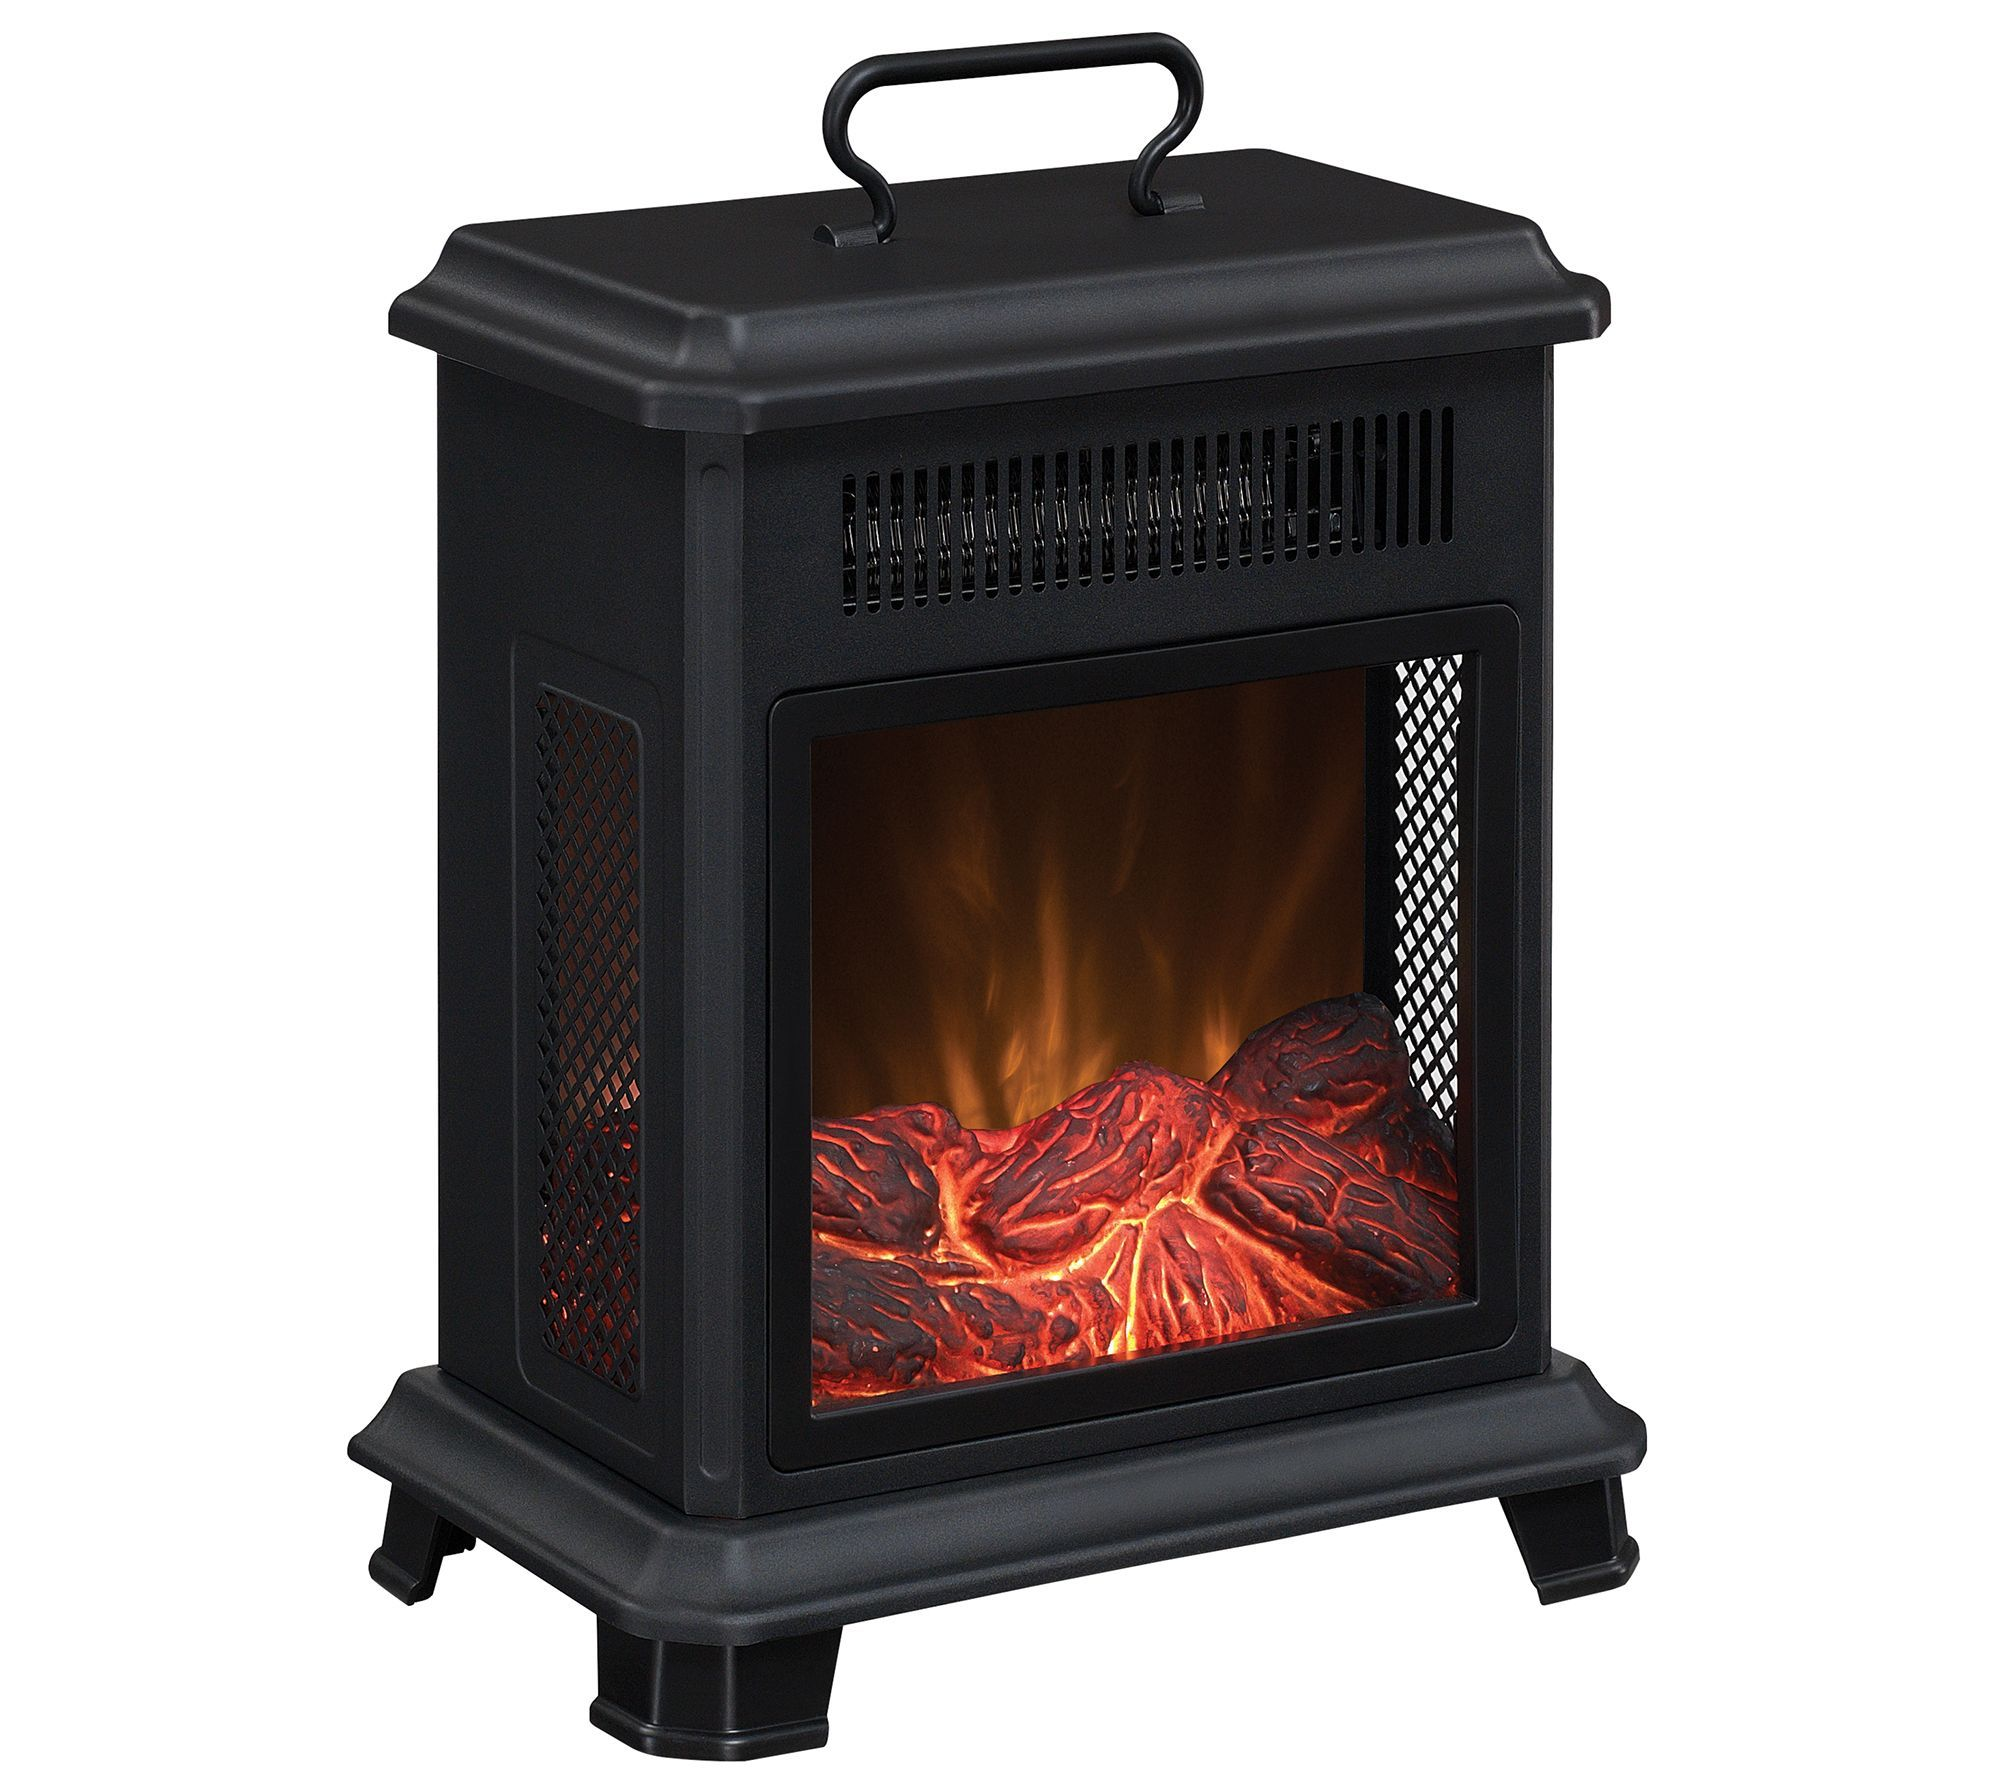 Duraflame Portable Stove Heater with Adjustable Thermostat